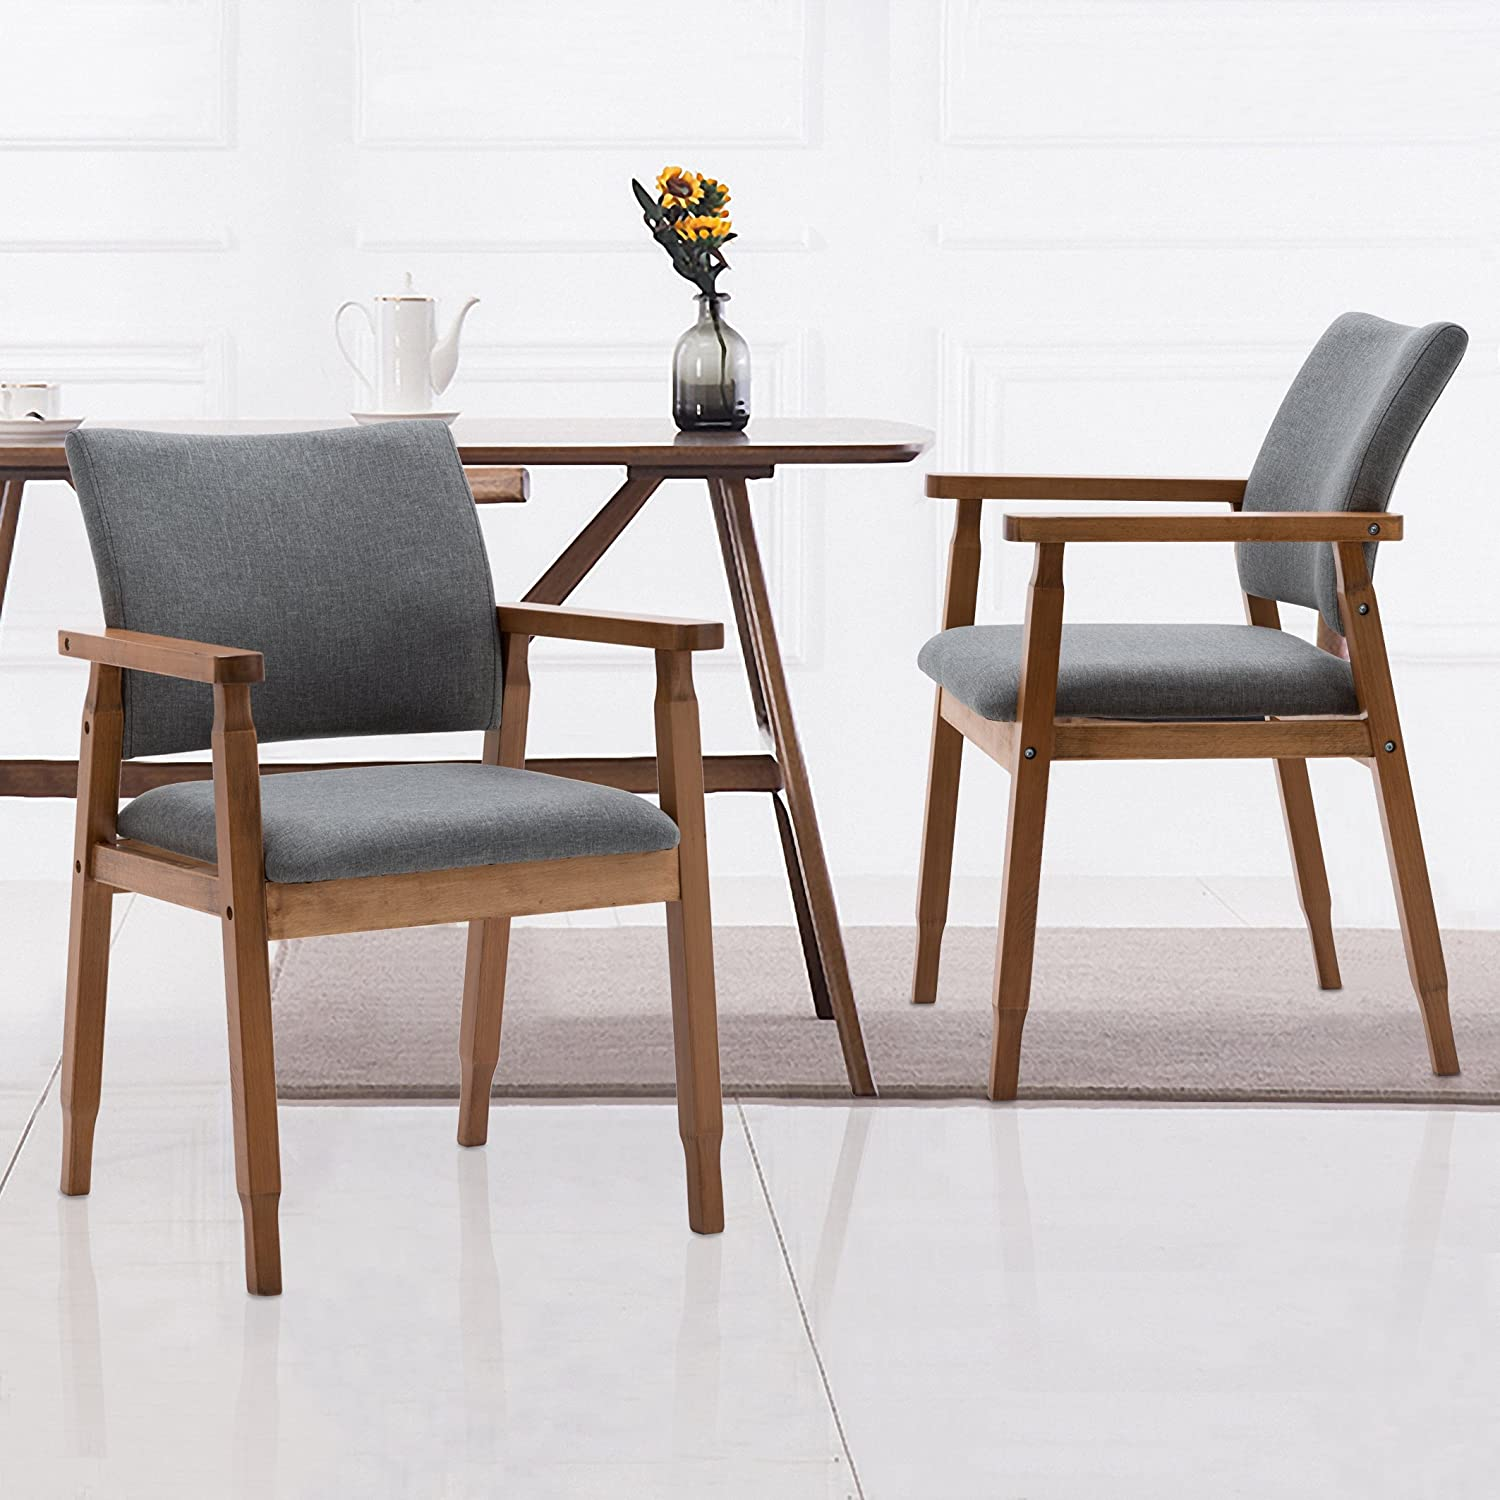 Amazon com set of 2 mid century modern dining chairs wood arm gray fabric kitchen cafe living room decor furniture chairs